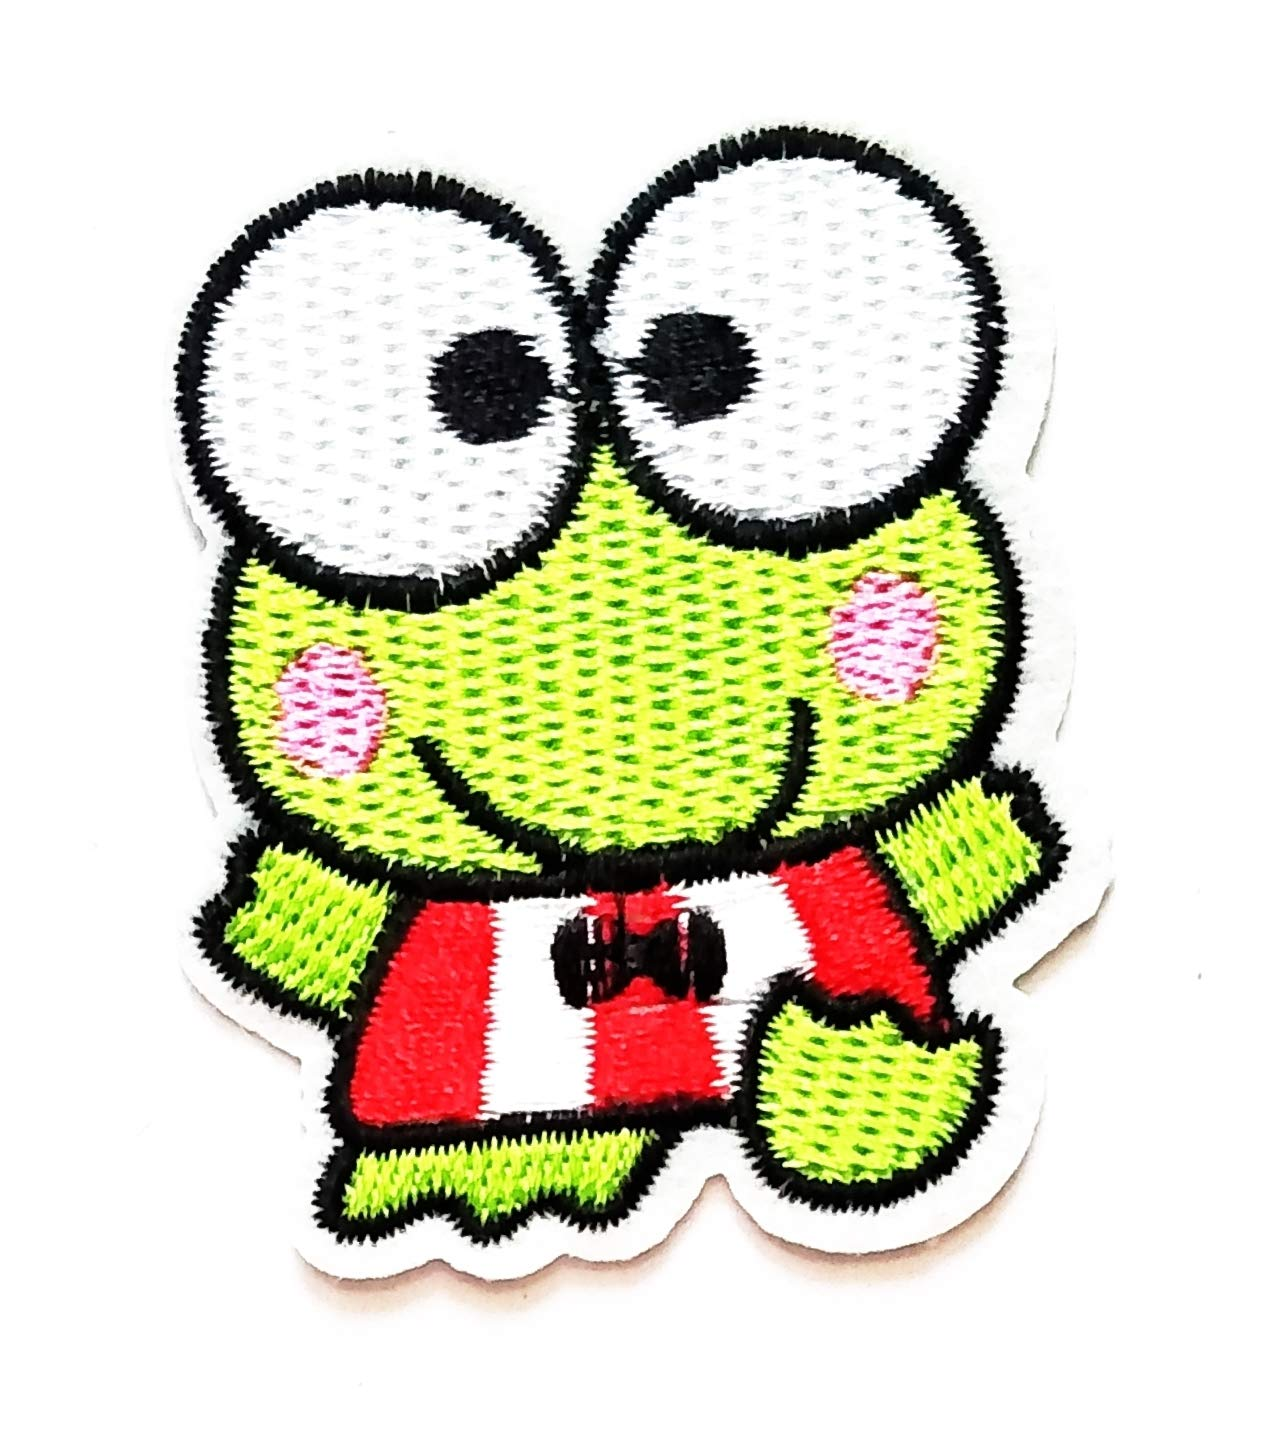 Nipitshop Patches Cute Little Green Frog Eyeball Cartoon Kids Patch Embroidered Iron On Patch for Clothes Backpacks T-Shirt Jeans Skirt Vests Scarf Hat Bag